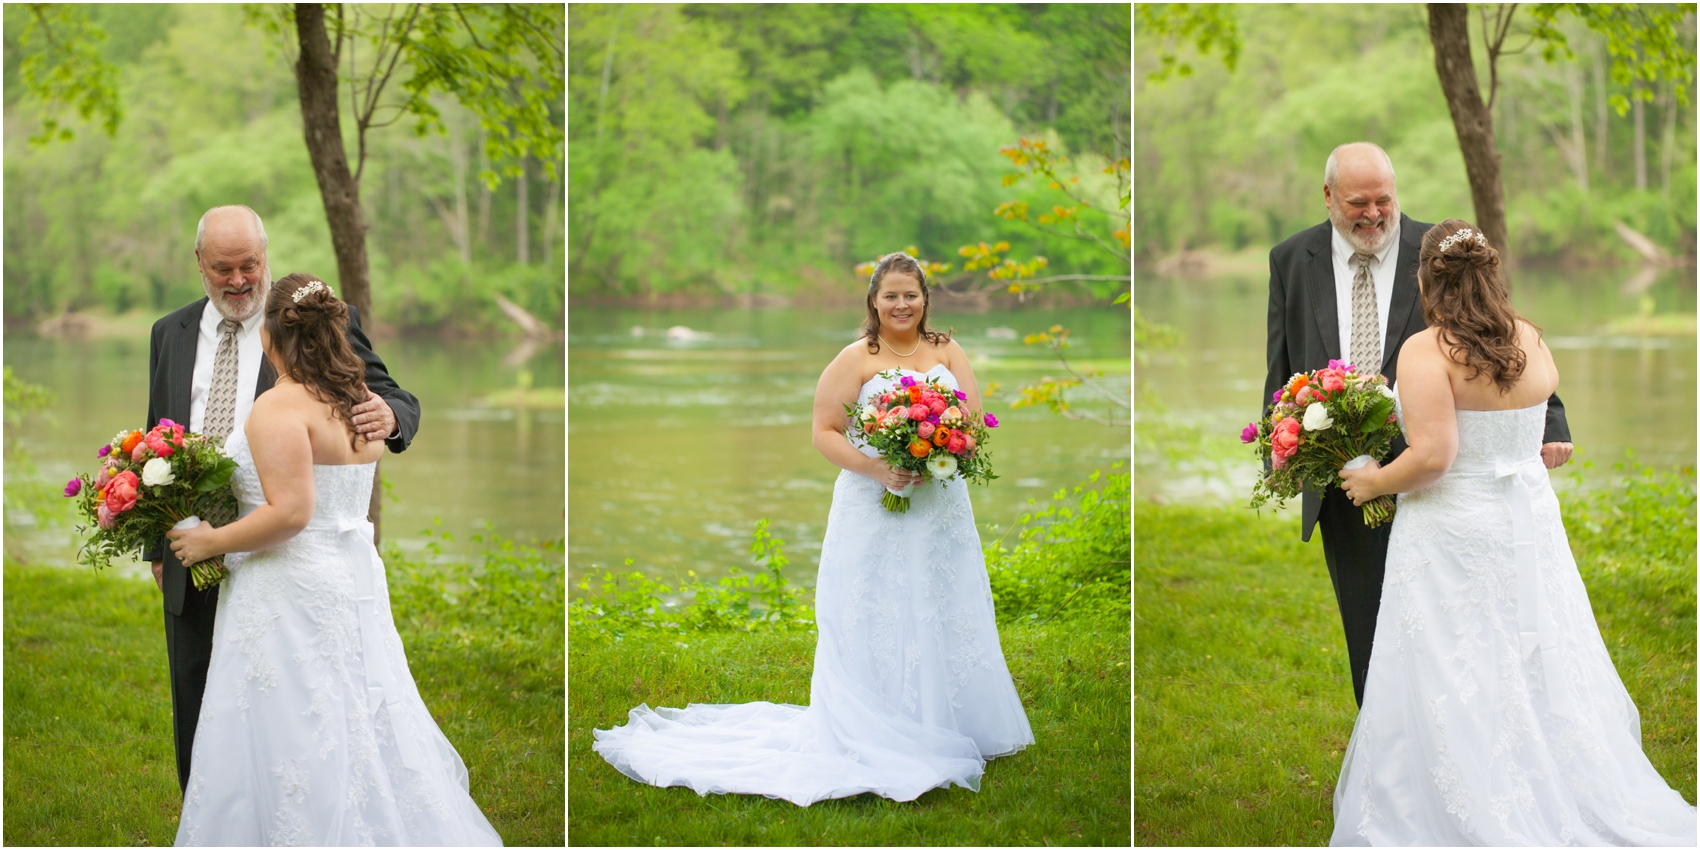 Outdoor_Central_Virginia_Clores_Bros_Summer_Wedding_Fredericksburg_VA_0045.jpg